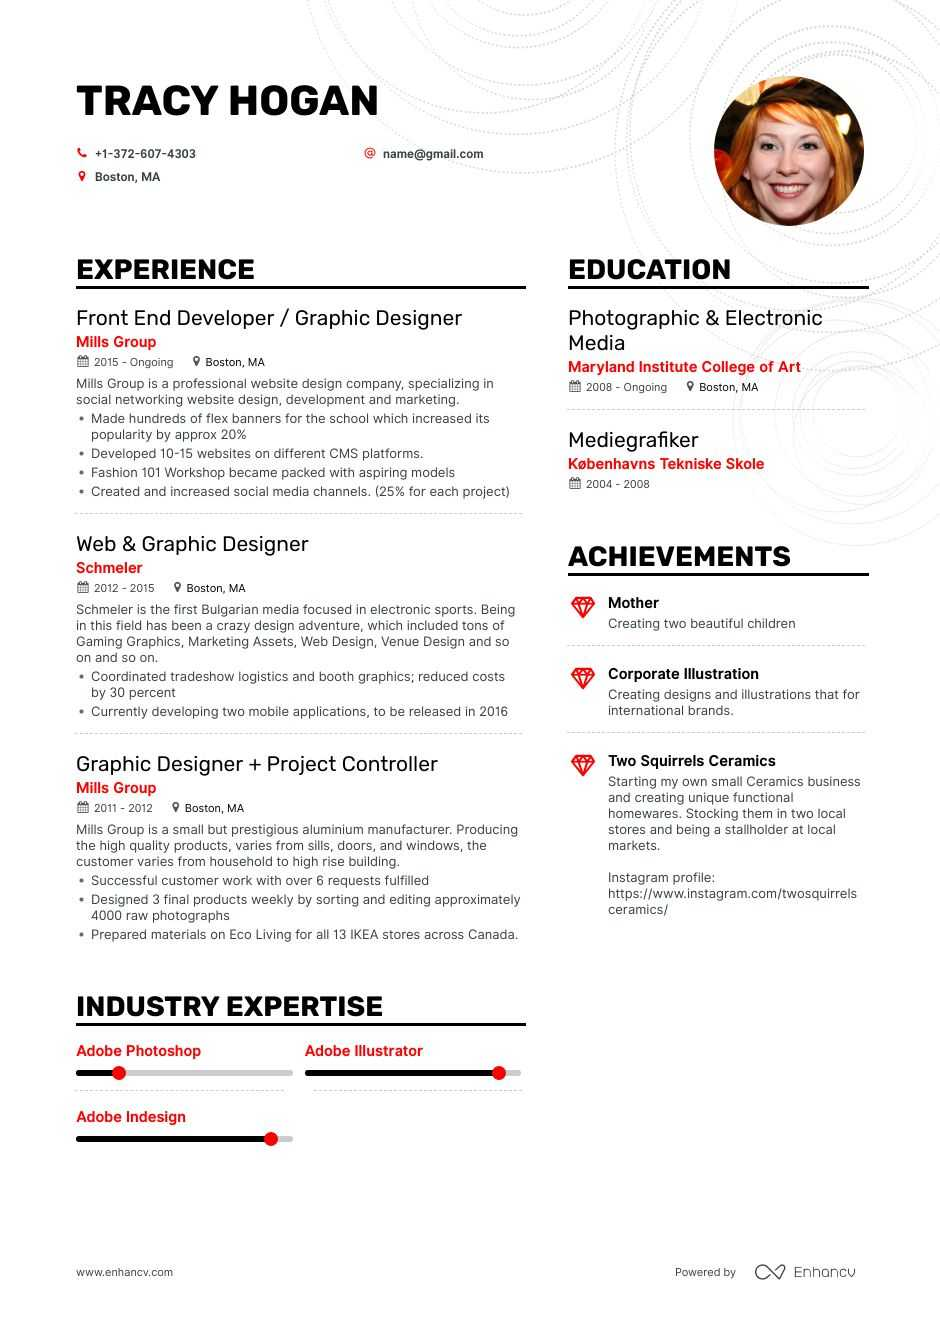 freelance graphic designer resume examples pro tips featured enhancv work experience pink Resume Freelance Work Experience Resume